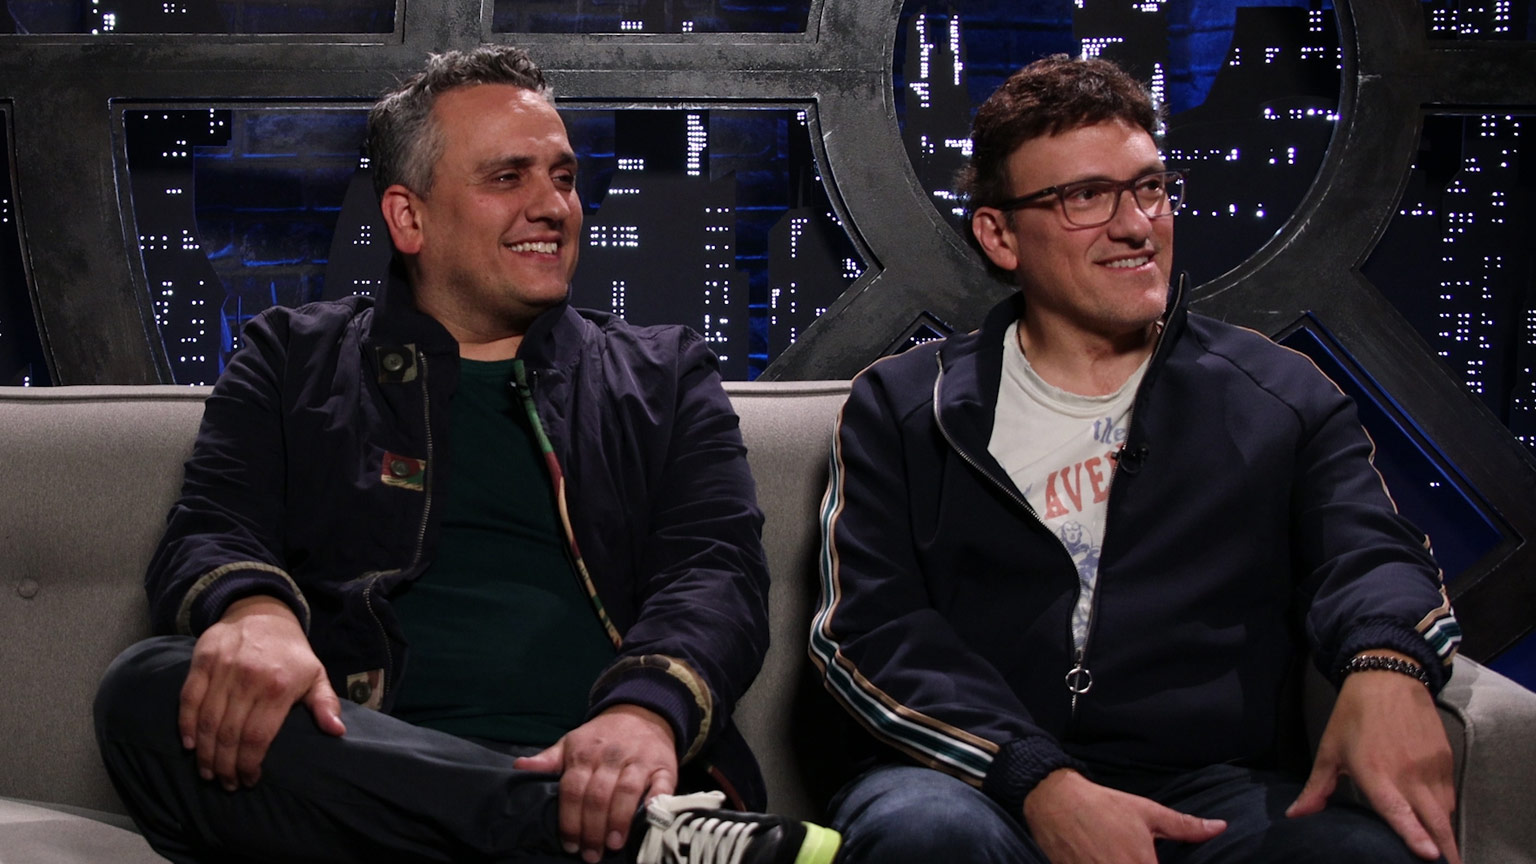 The Russo Brothers on The Star Wars Show